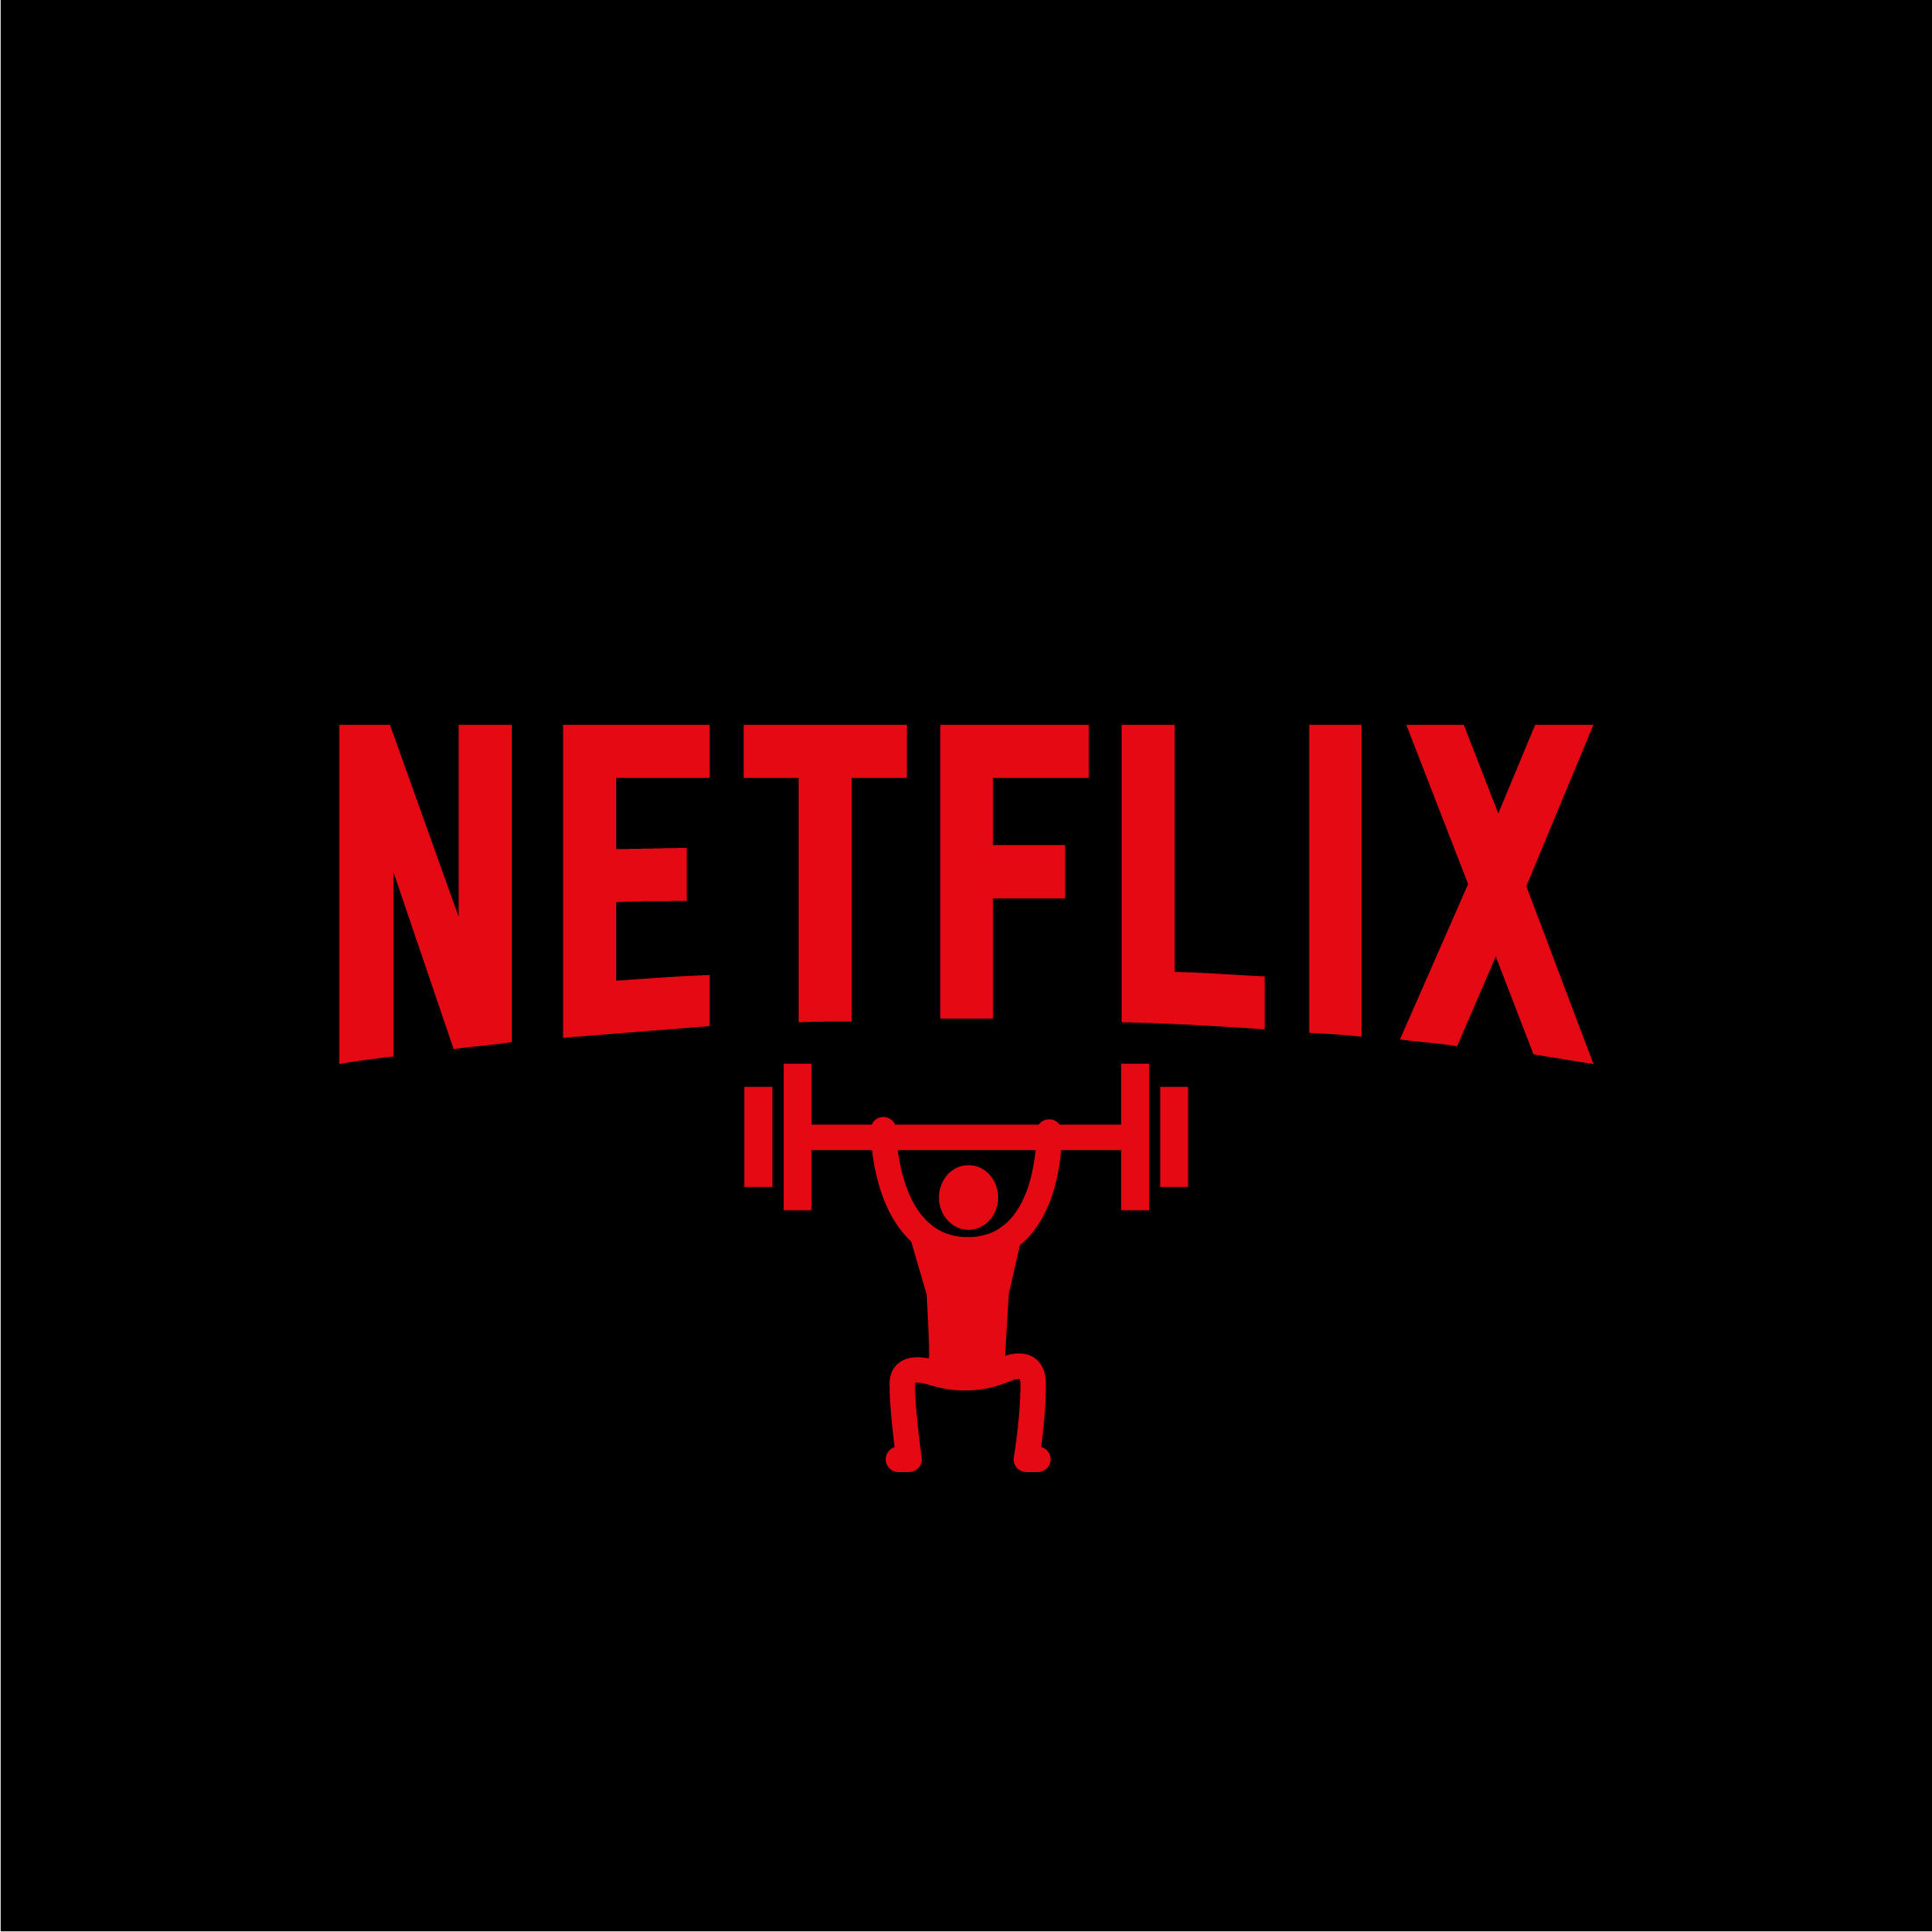 Netflix should add fitness programs to their catalog